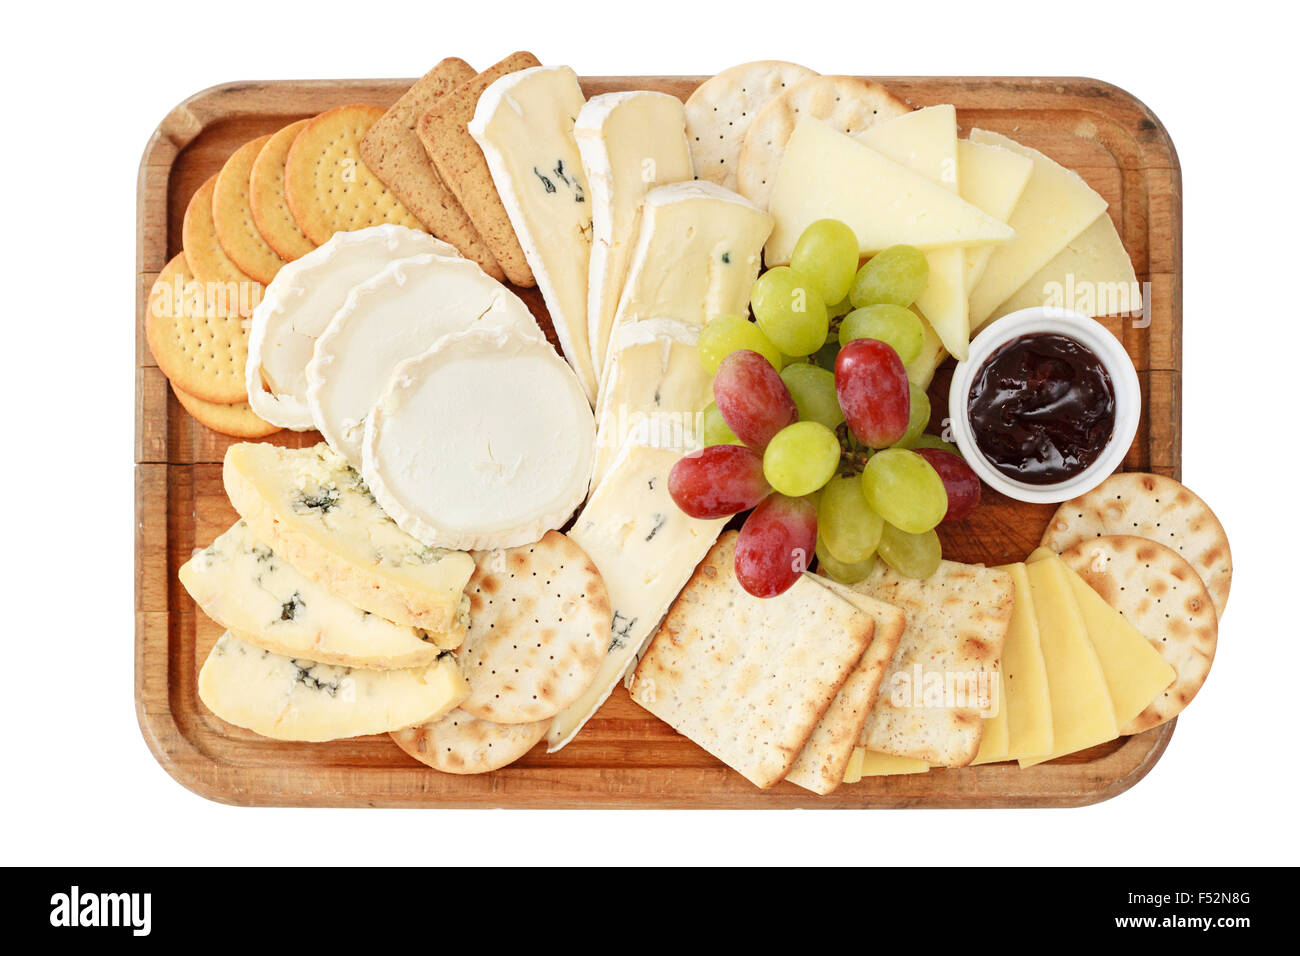 Top view of a platter of different cheese with grapes, biscuits, and raspberry jam on a wooden board isolated on - Stock Image